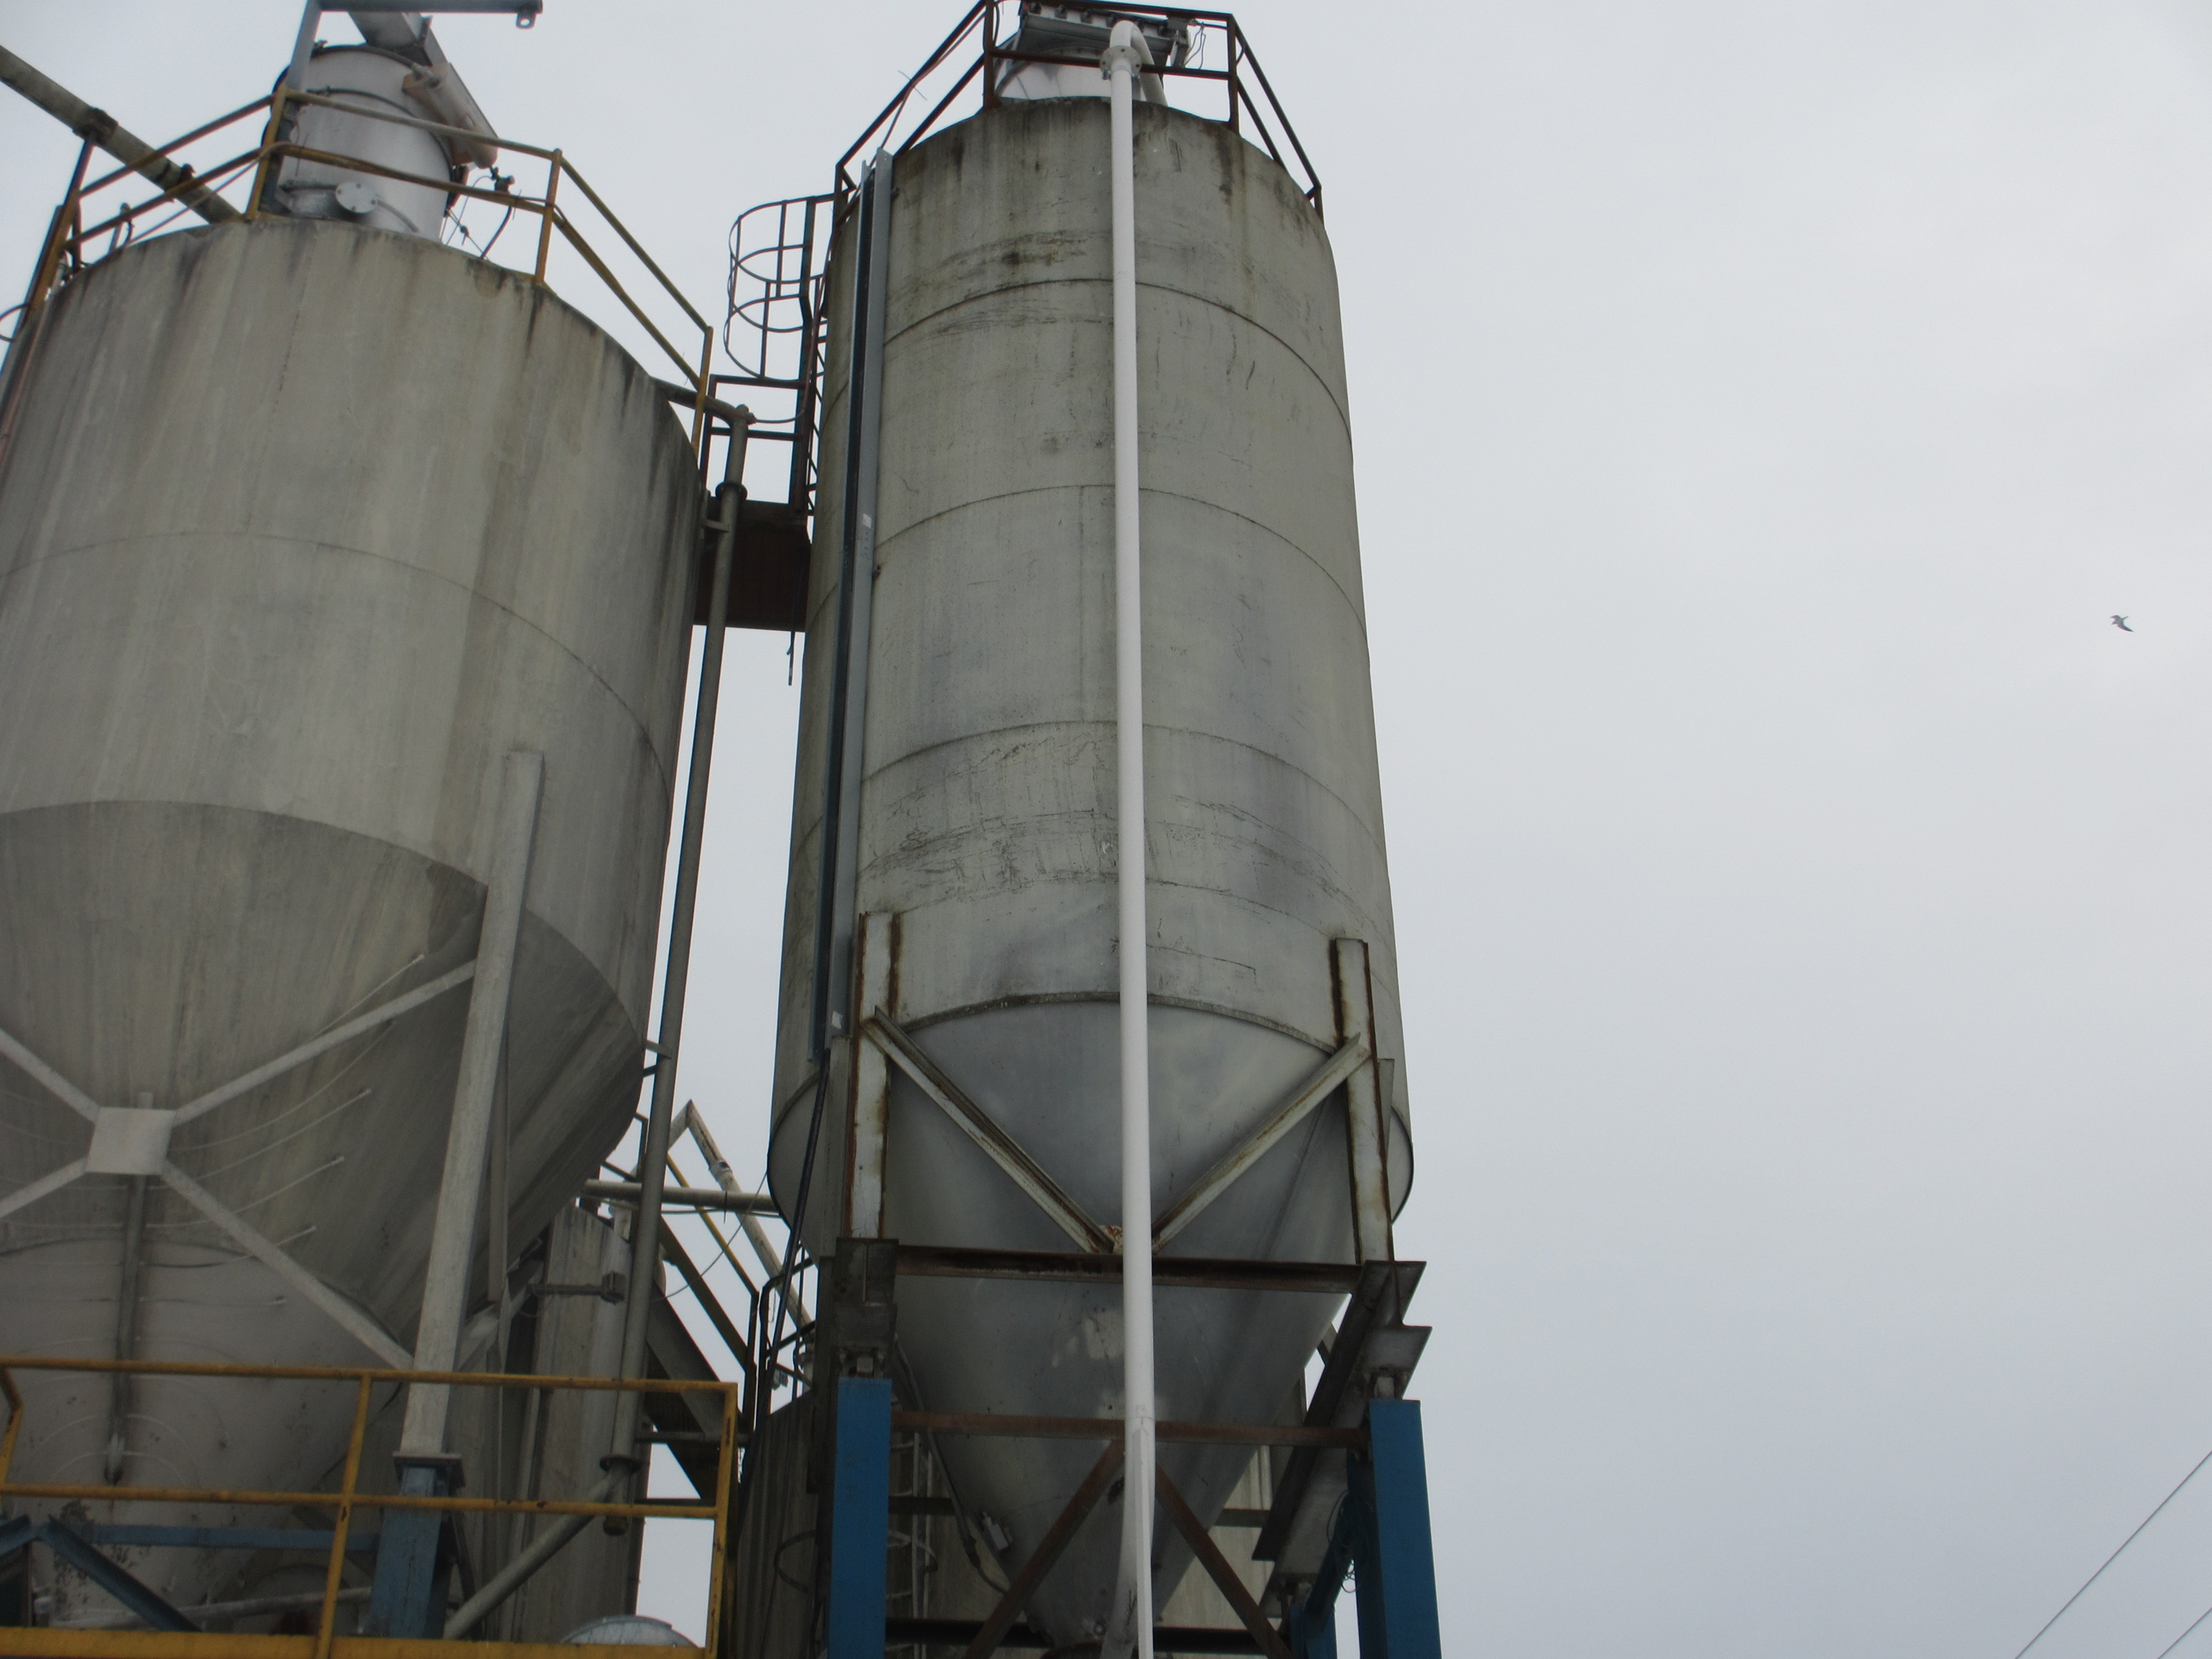 Lot 66 - STEEL TRUCK LOAD OUT SILO 70X, 10 FOOT , DIA. X 28 FOOT HIGH, 58 DEG. CONE W/ LOAD CELLS